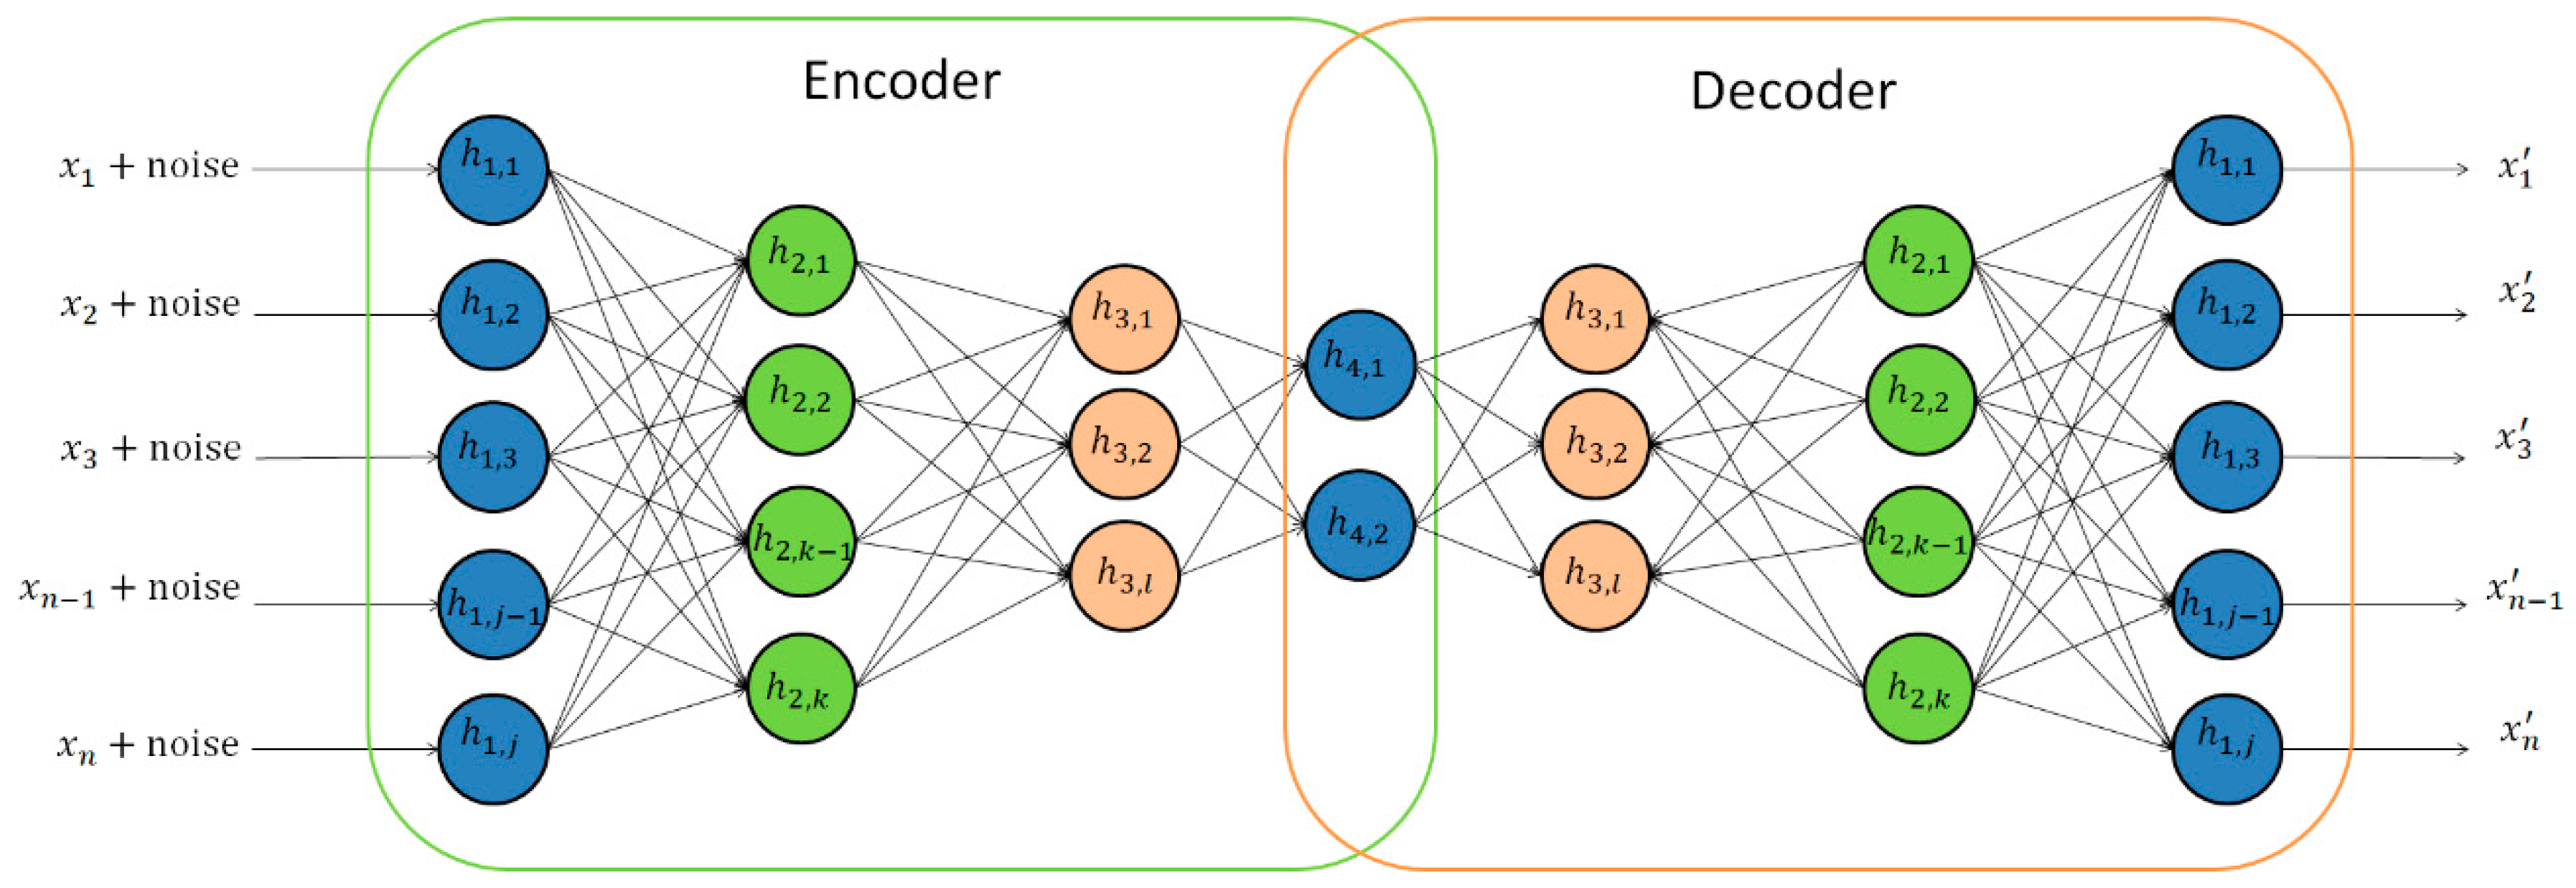 Information   Free Full-Text   A Survey of Deep Learning